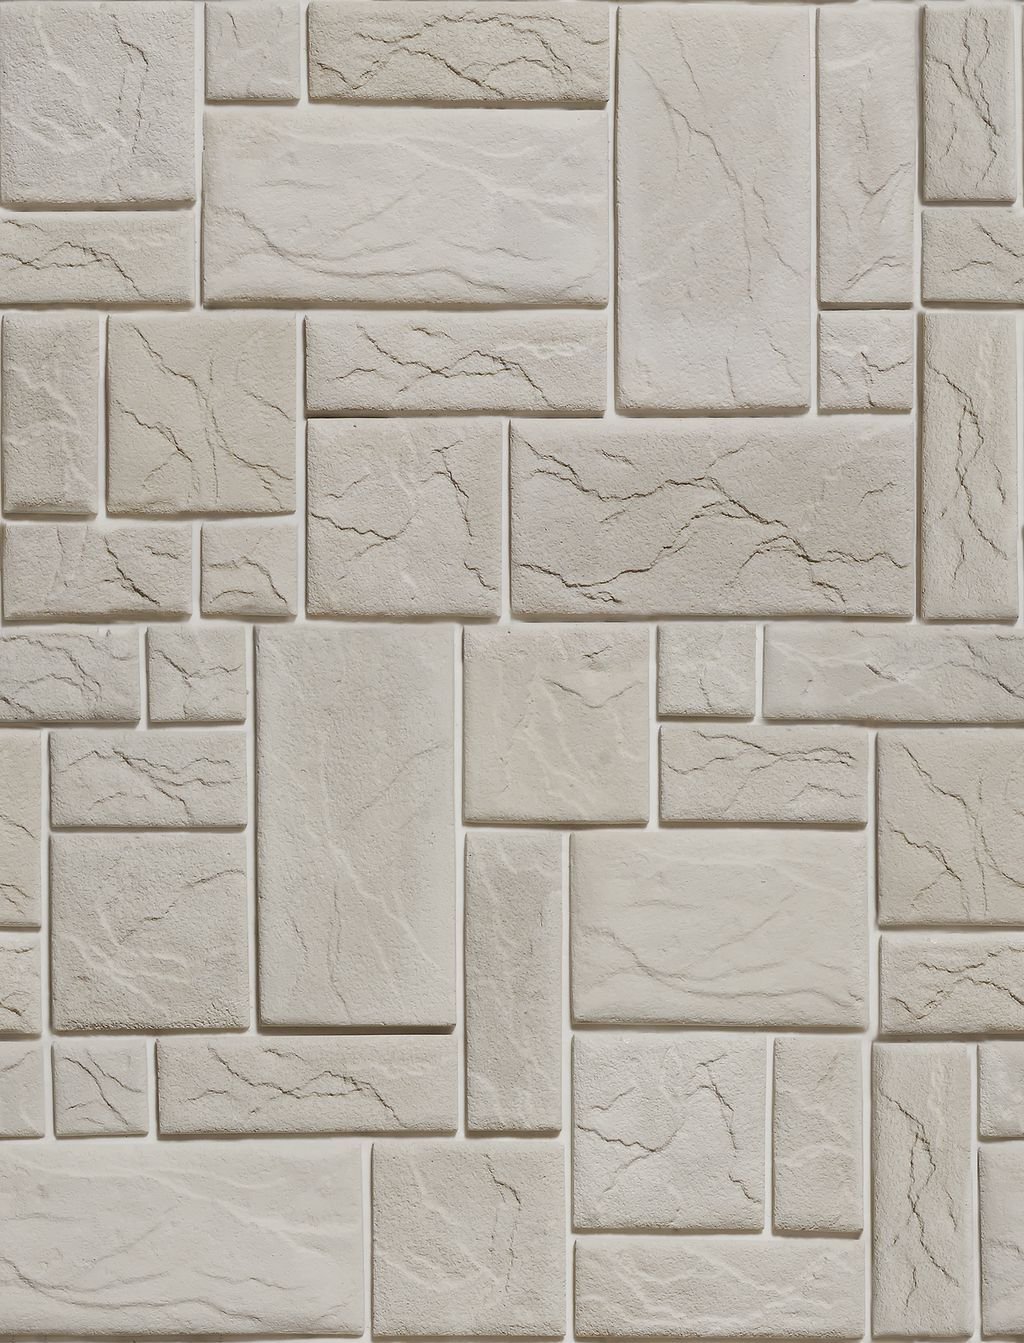 Awesome Wall And Floor Tile Texture Ideas Wall Tiles Tiles Texture Textured Walls